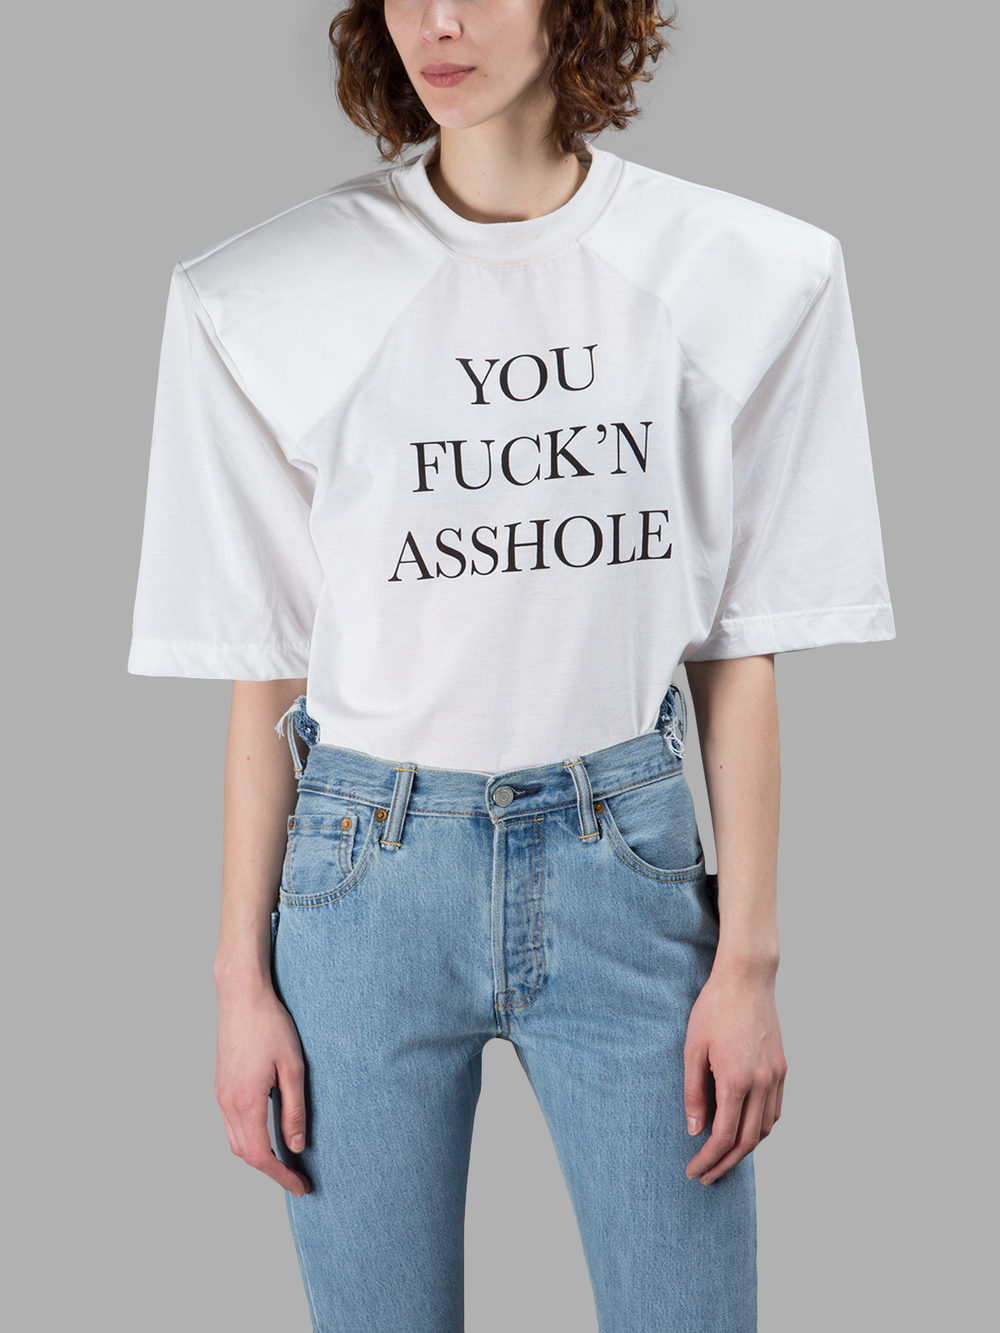 d73cdc7c Vetements White 'You Fuck'N Asshole' Football Shoulder T-Shirt ...